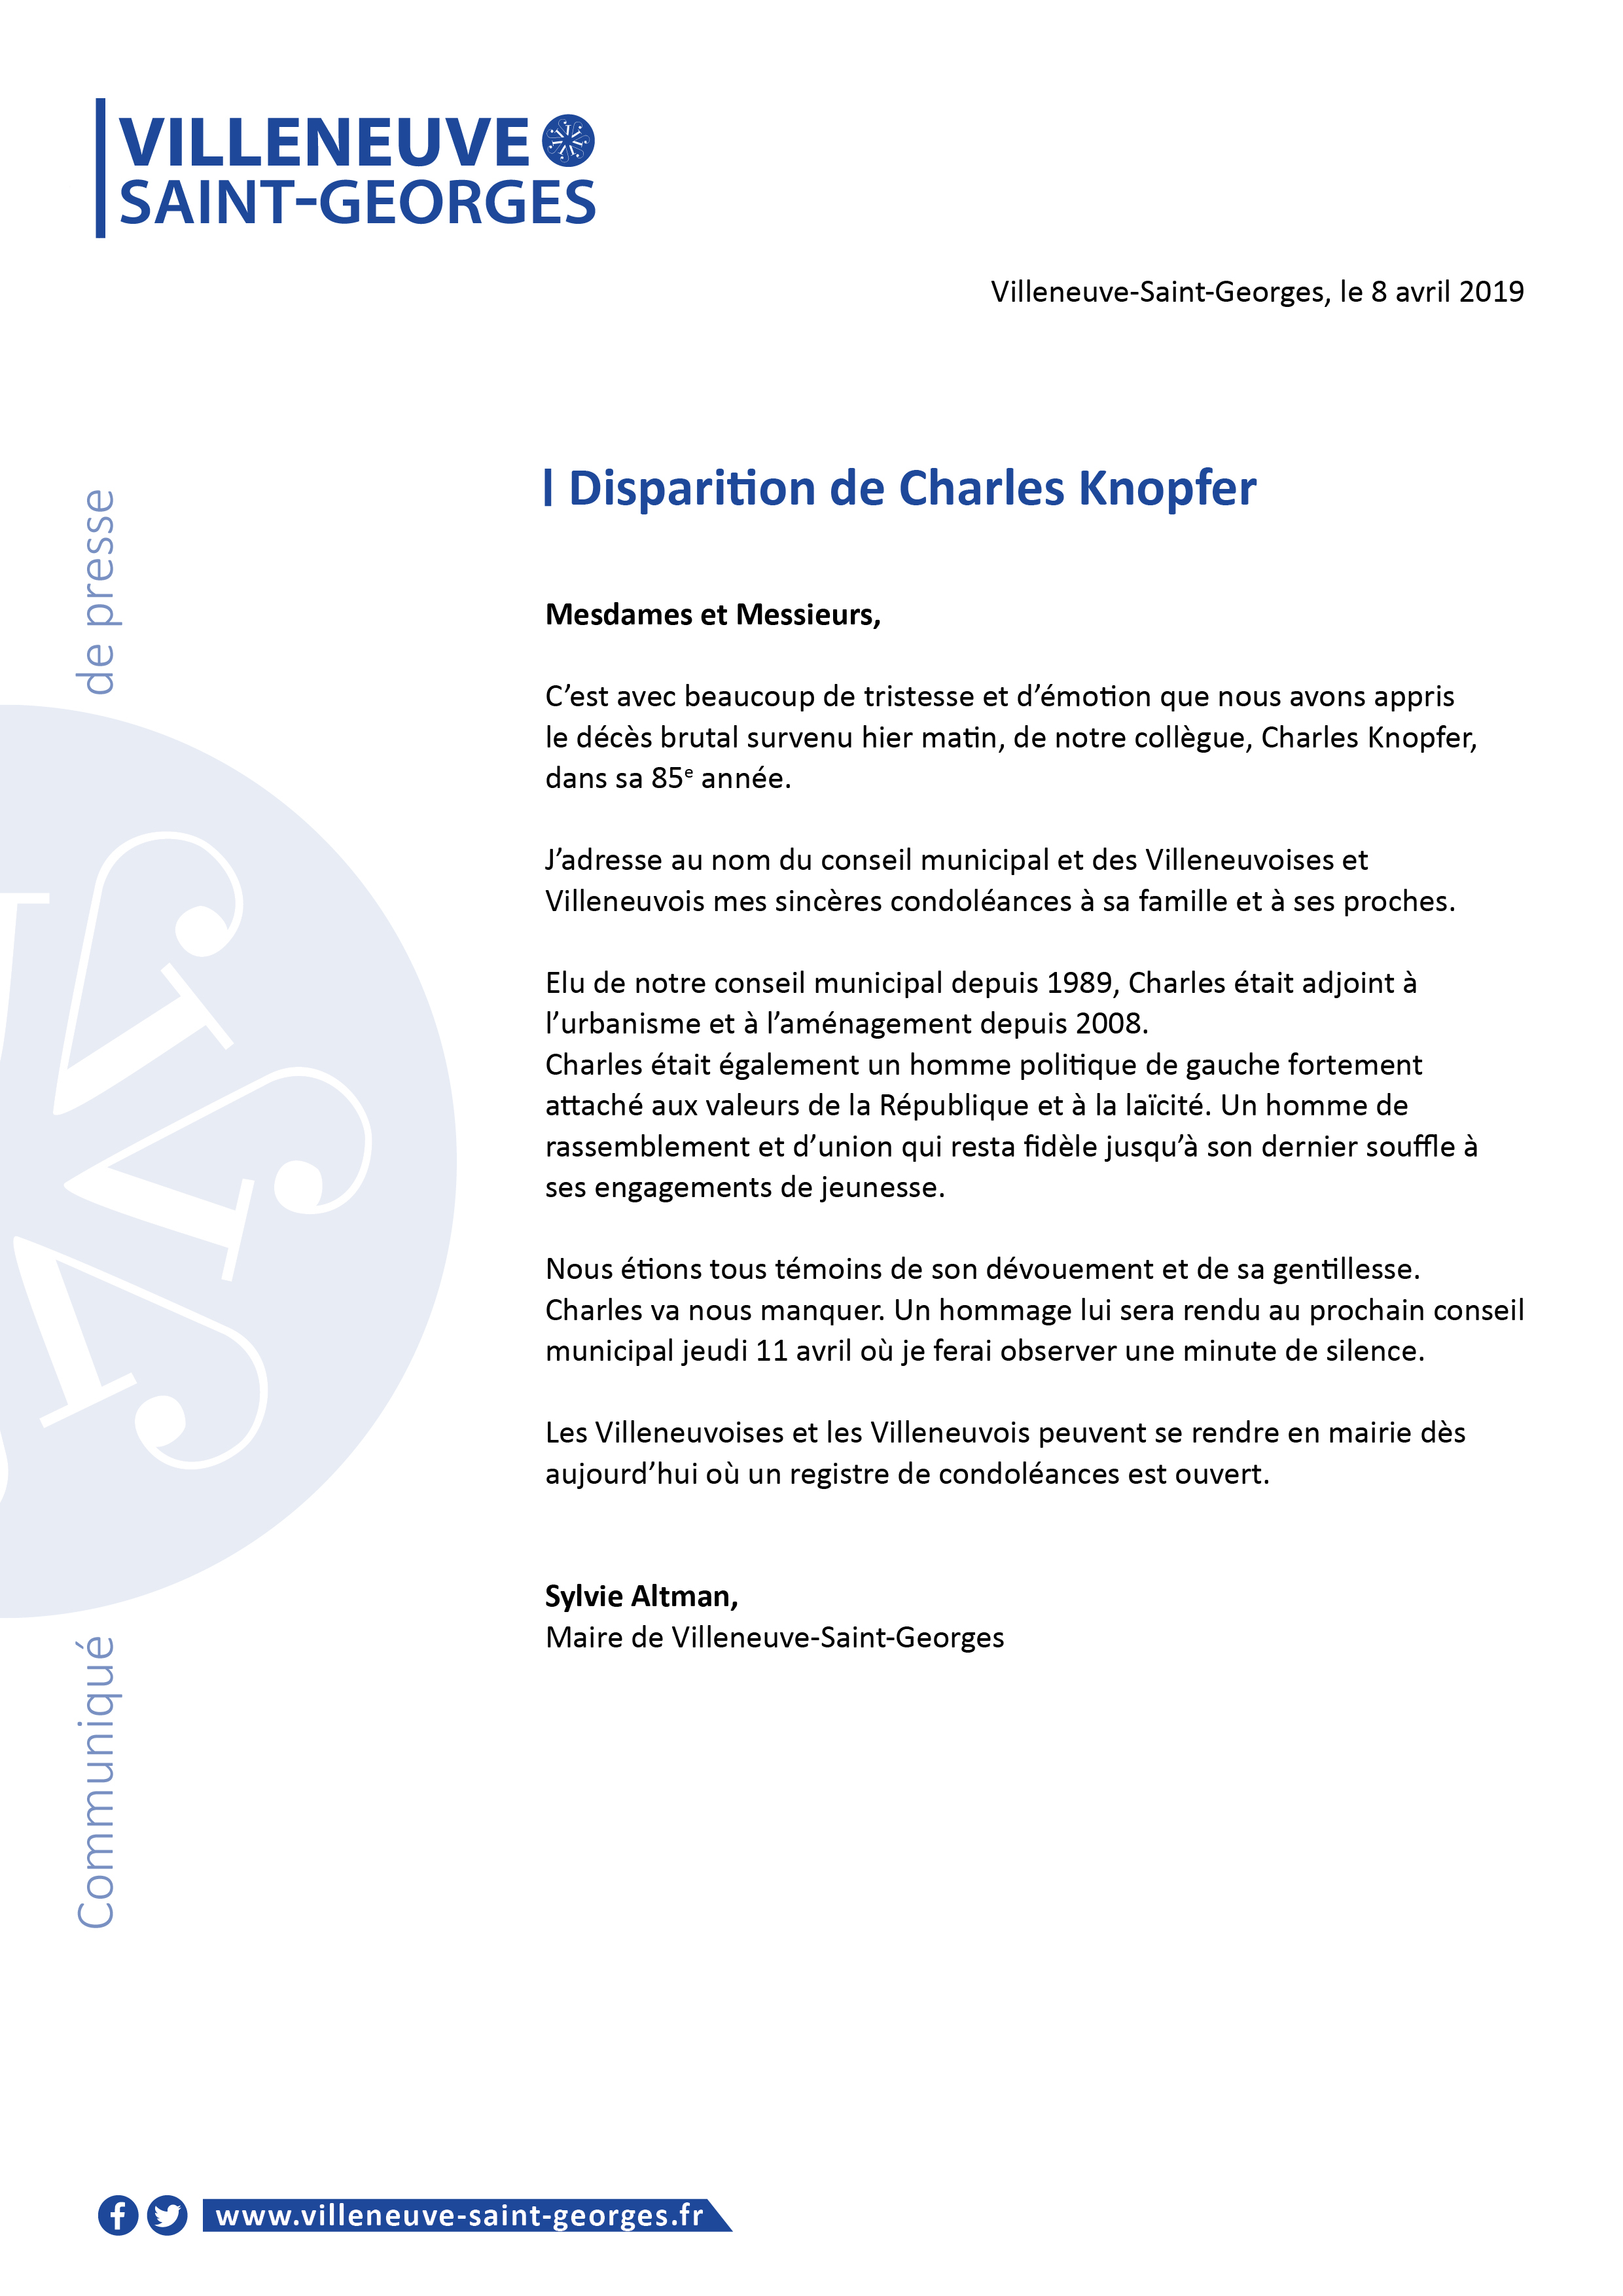 Disparition de Charles Knopfer